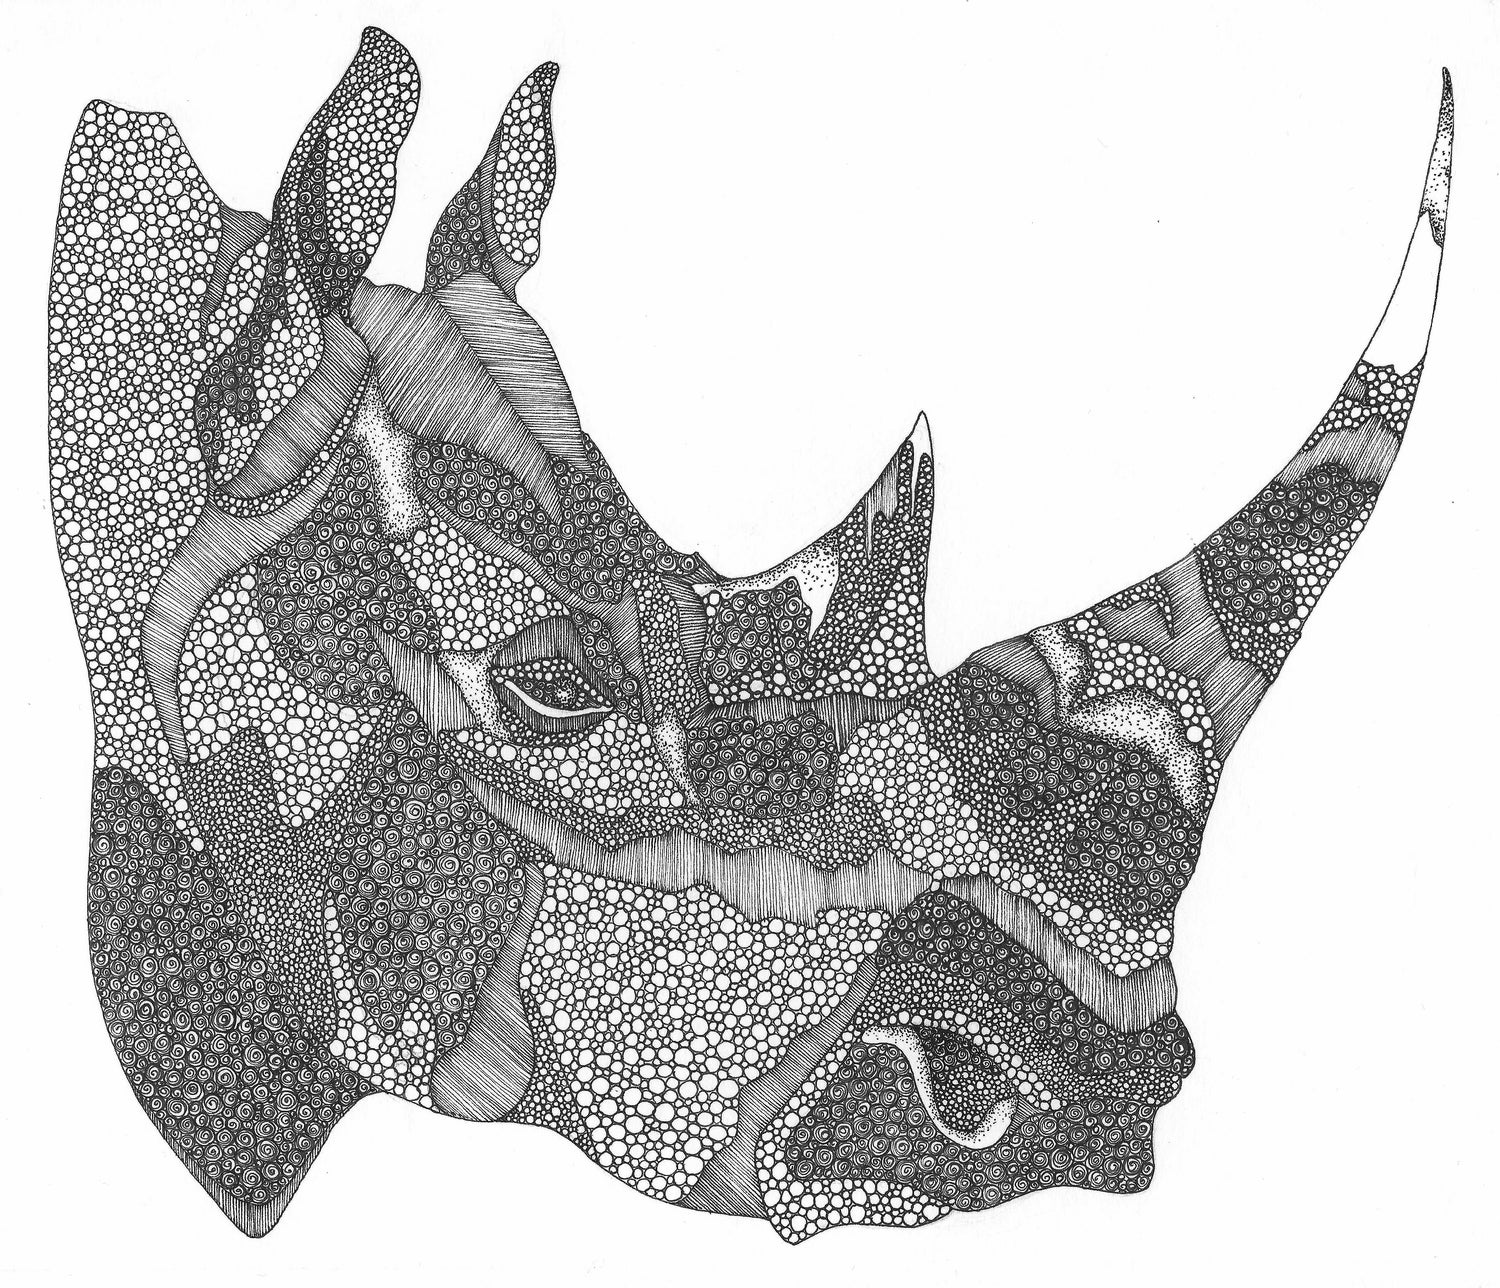 Image of The Square-lipped Rhinoceros